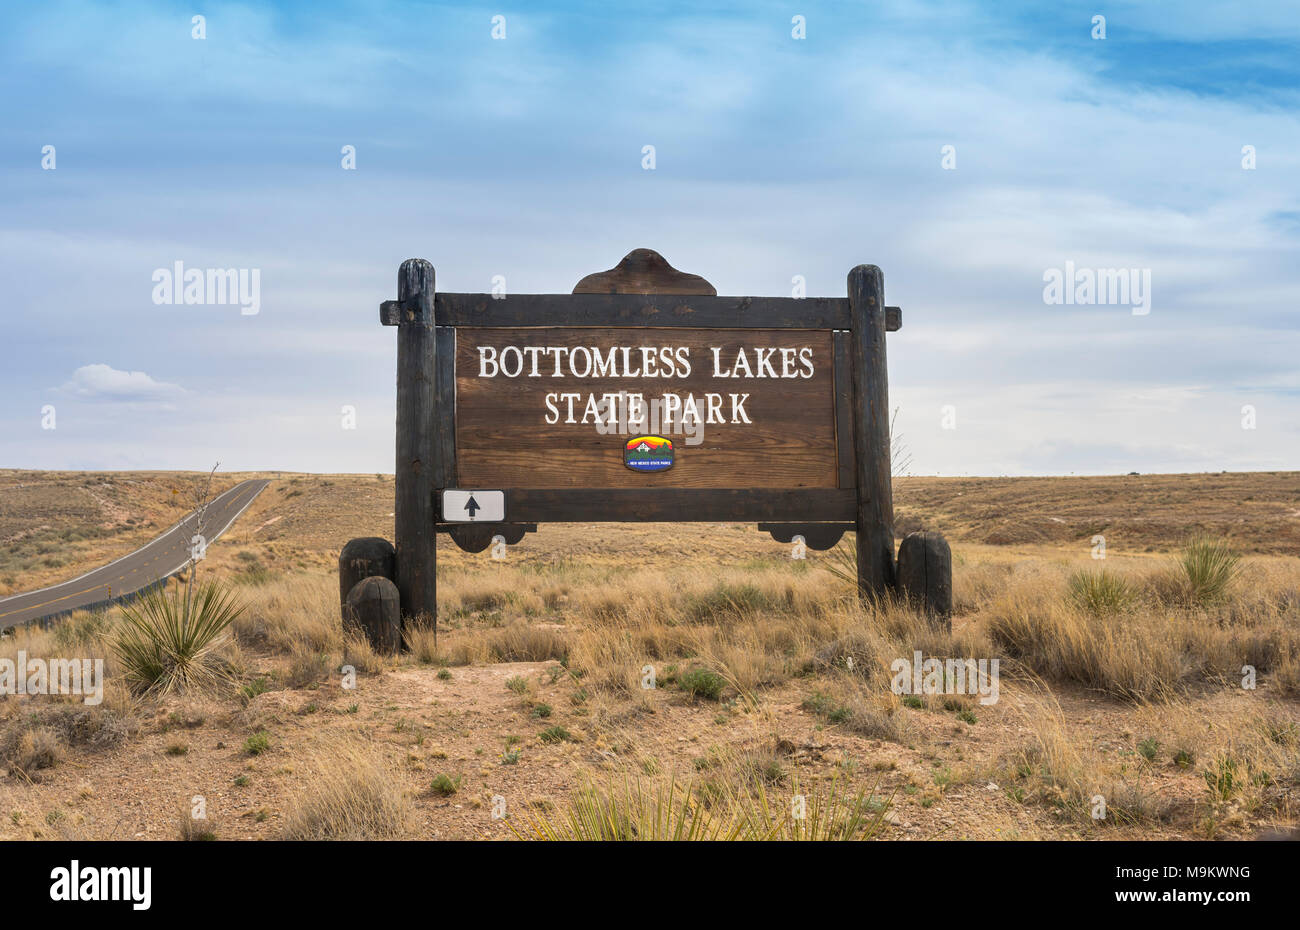 Bottomless Lakes State Park entrance sign near Roswell, New Mexico, USA. - Stock Image